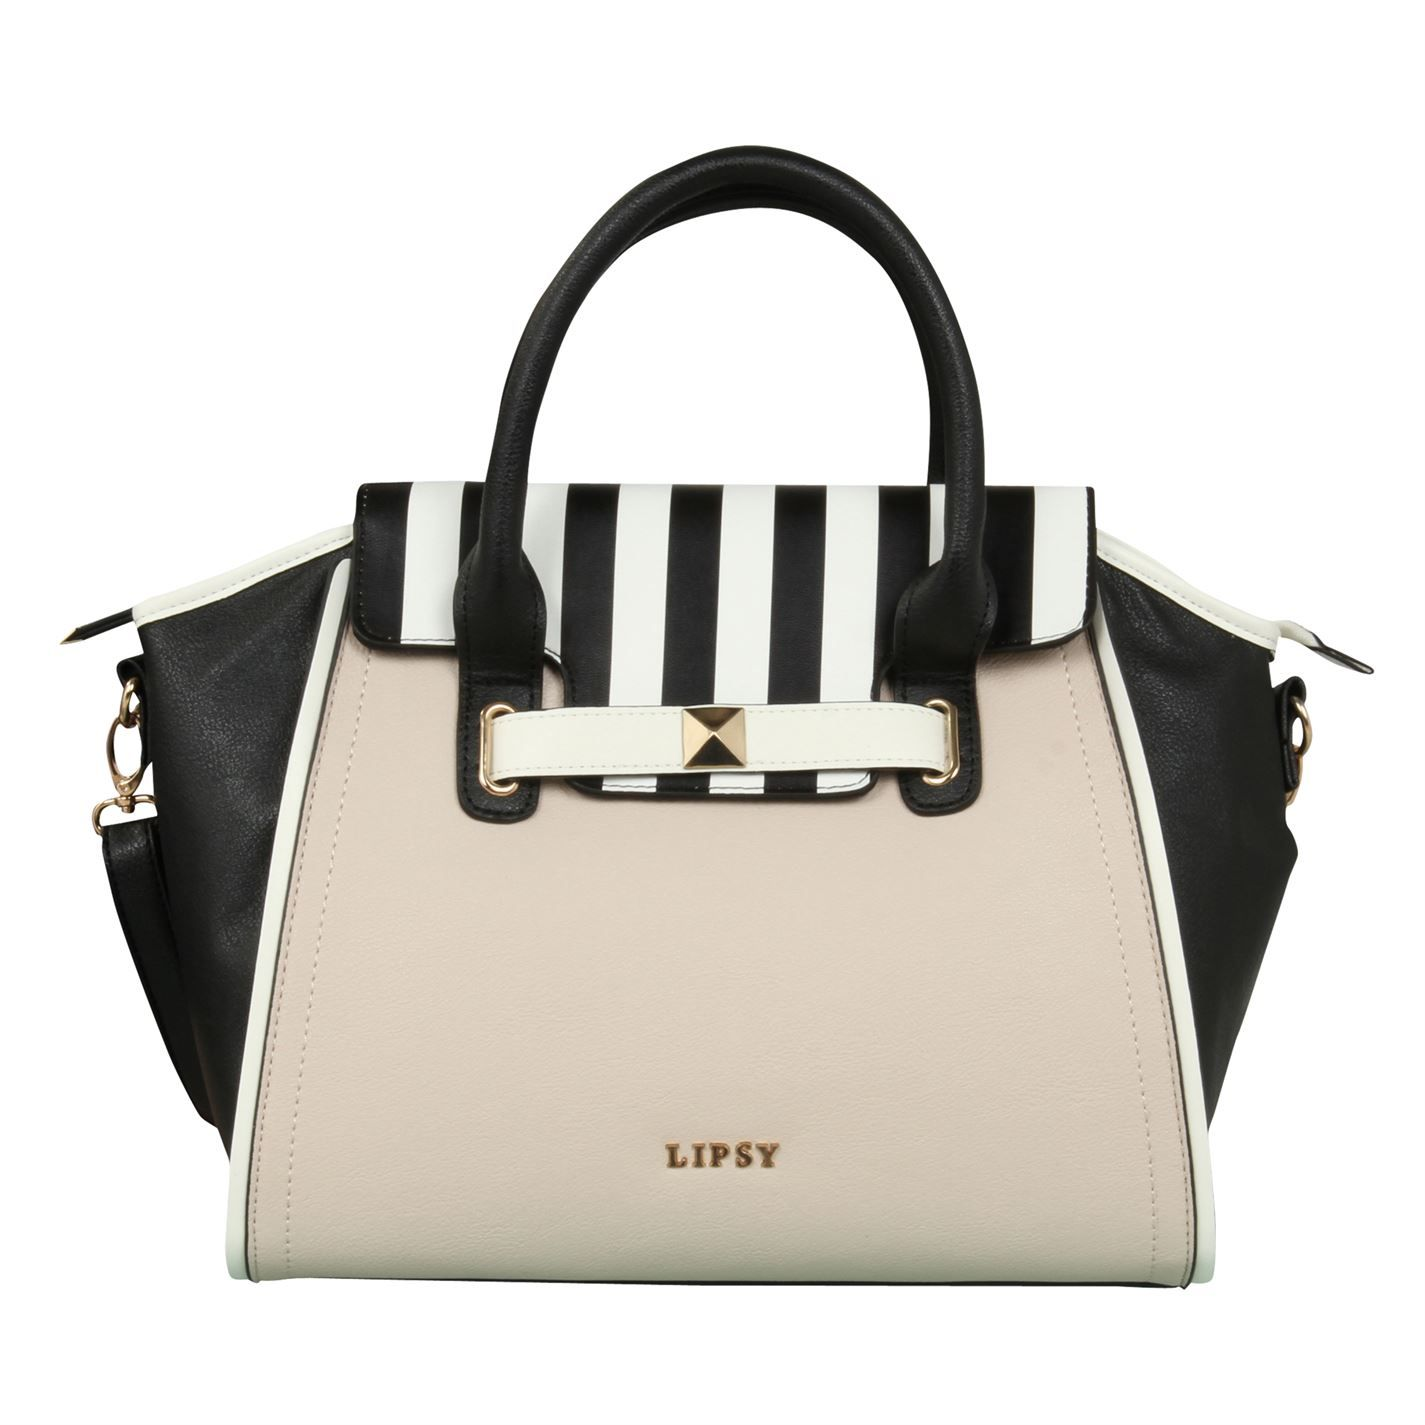 Lipsy Stripe Tote Bag | Shop Womens Bags at USC | Bags | Pinterest ...